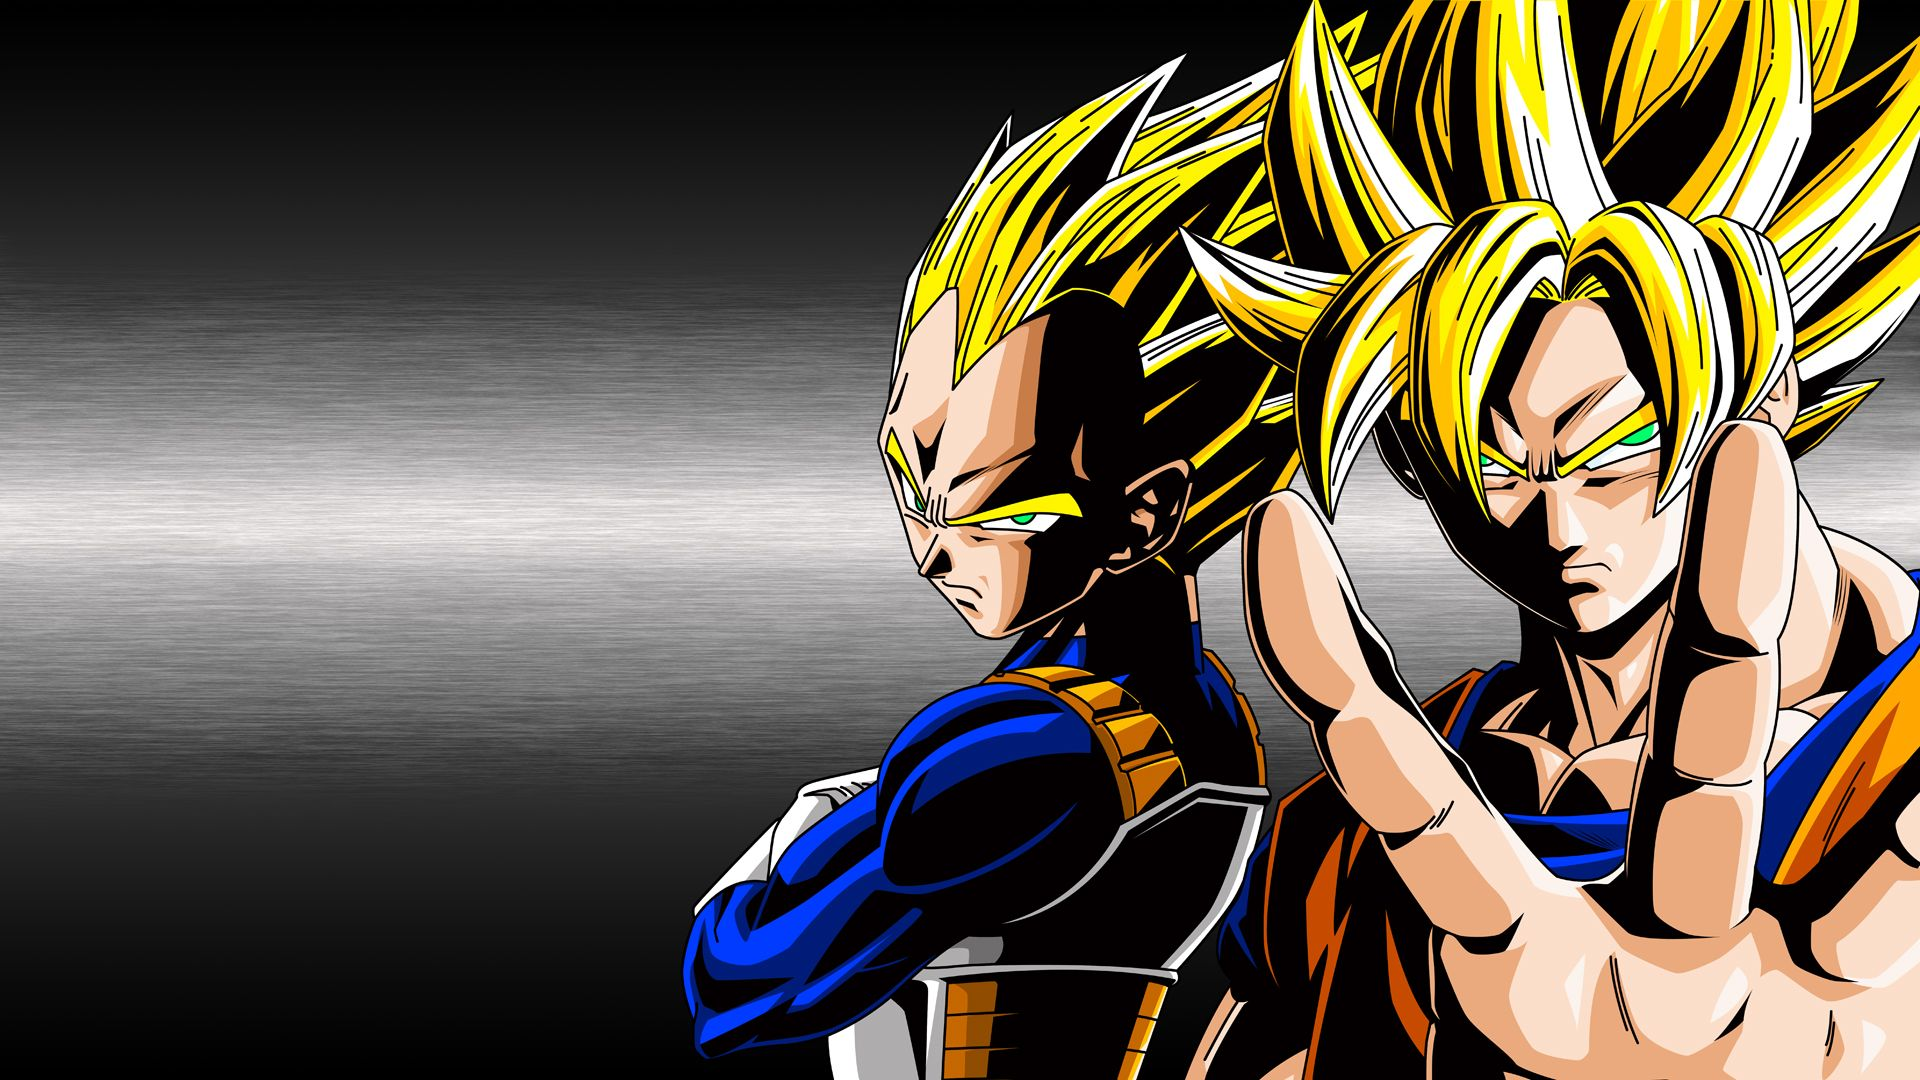 40 best goku wallpaper hd for pc: dragon ball z | pinterest | goku